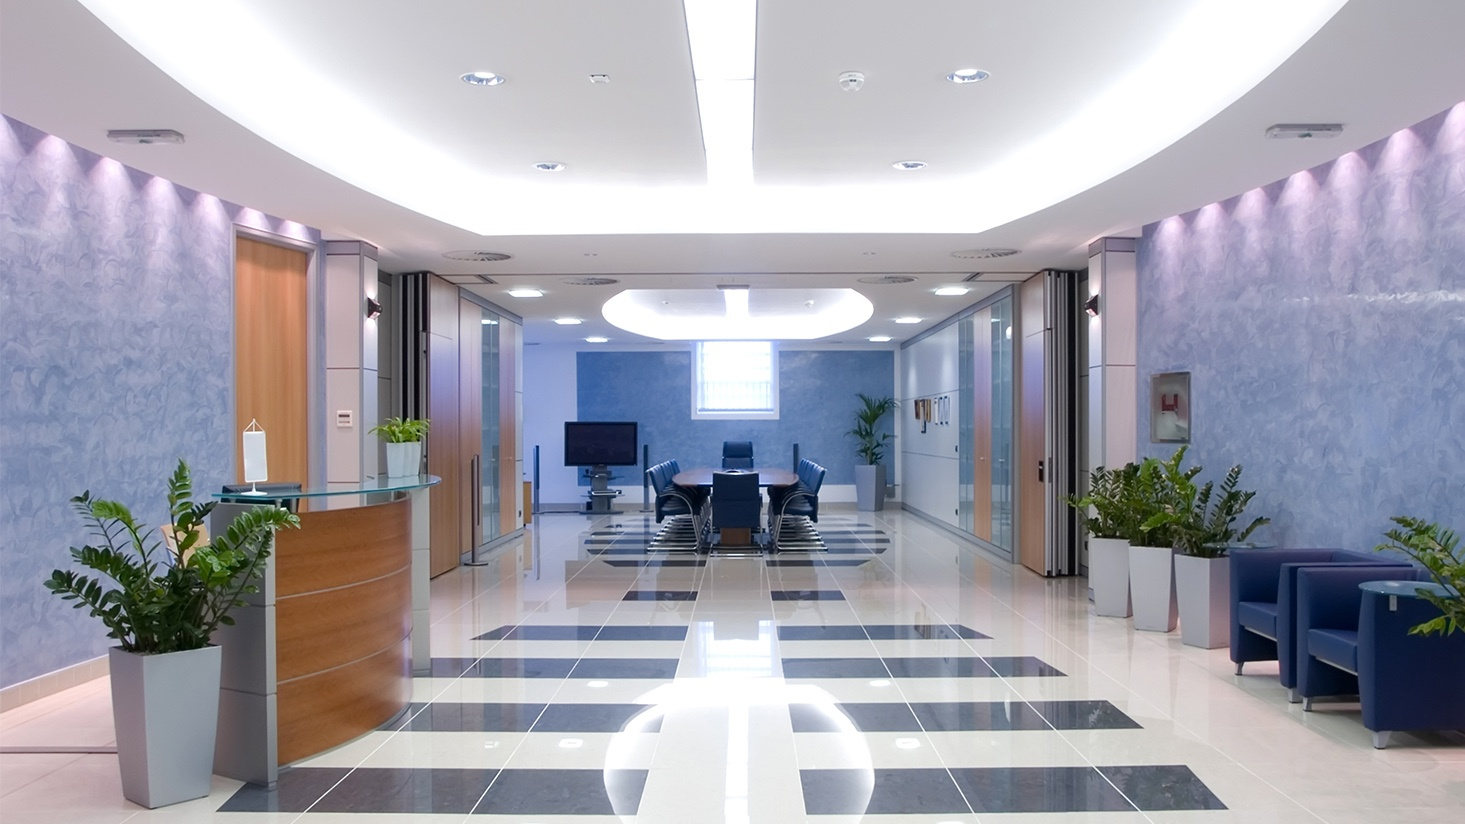 Office Lighting Common Light Bulbs And Led Upgrades For Commercial Offices